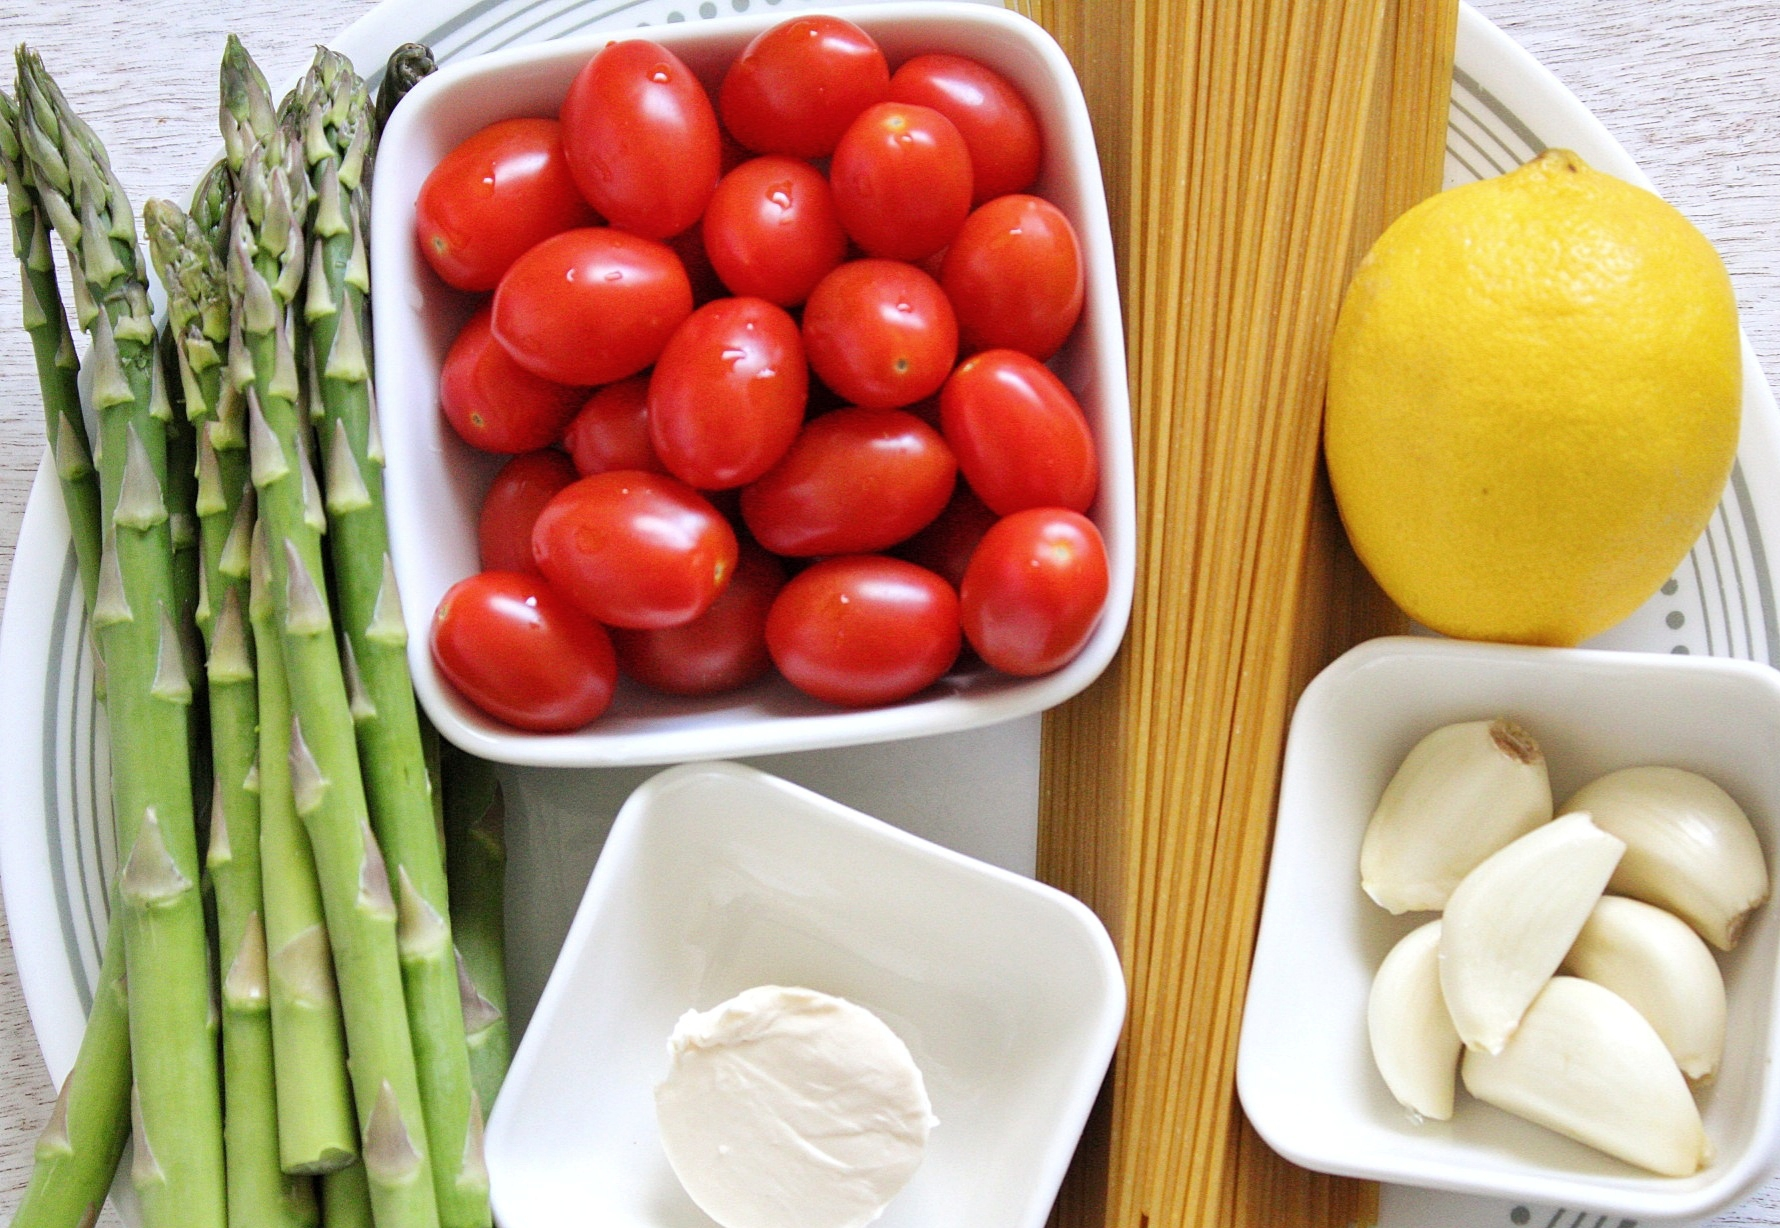 Uncooked spaghetti, whole lemon, garlic cloves, vegan butter, asparagus, and tomatoes on a plate